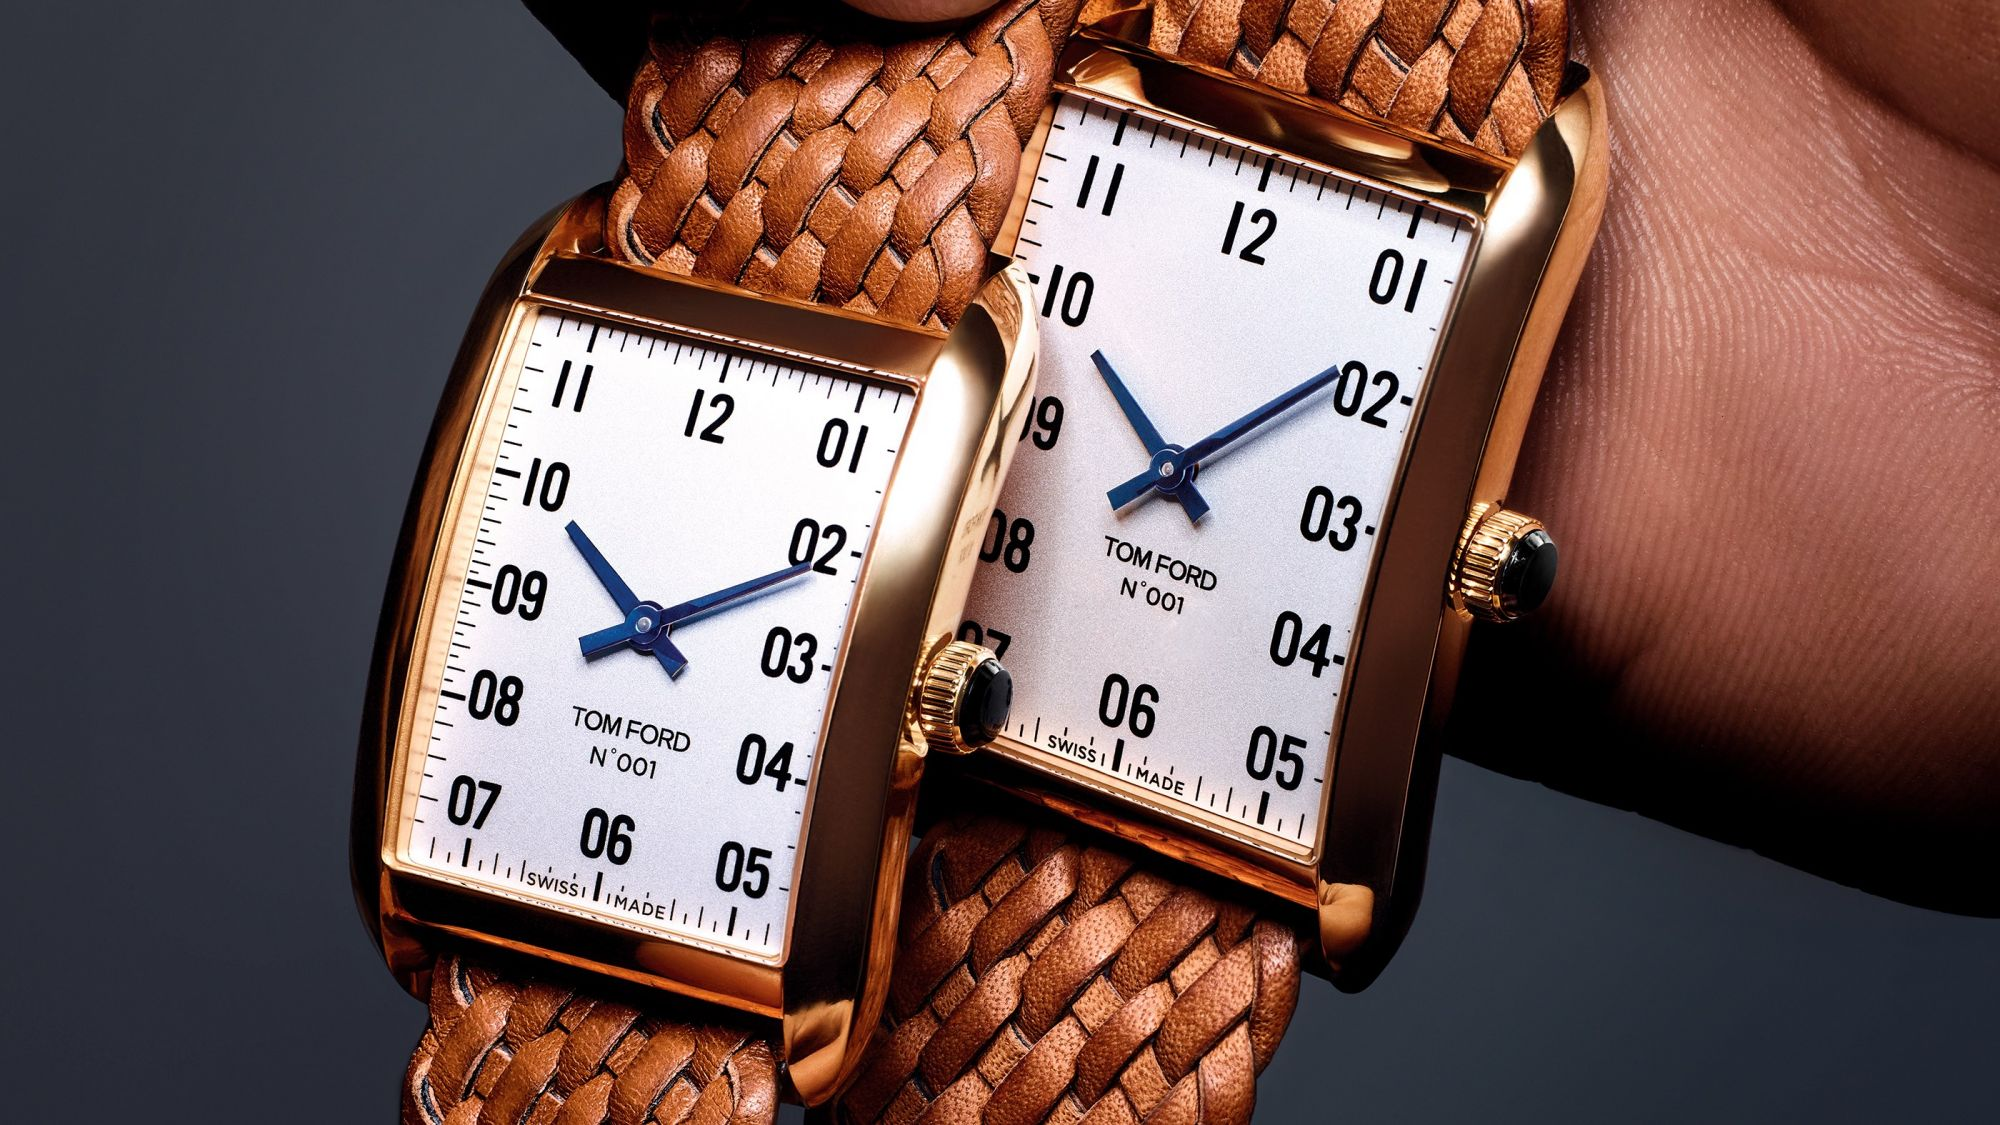 Tom Ford Launches A Watch Collection